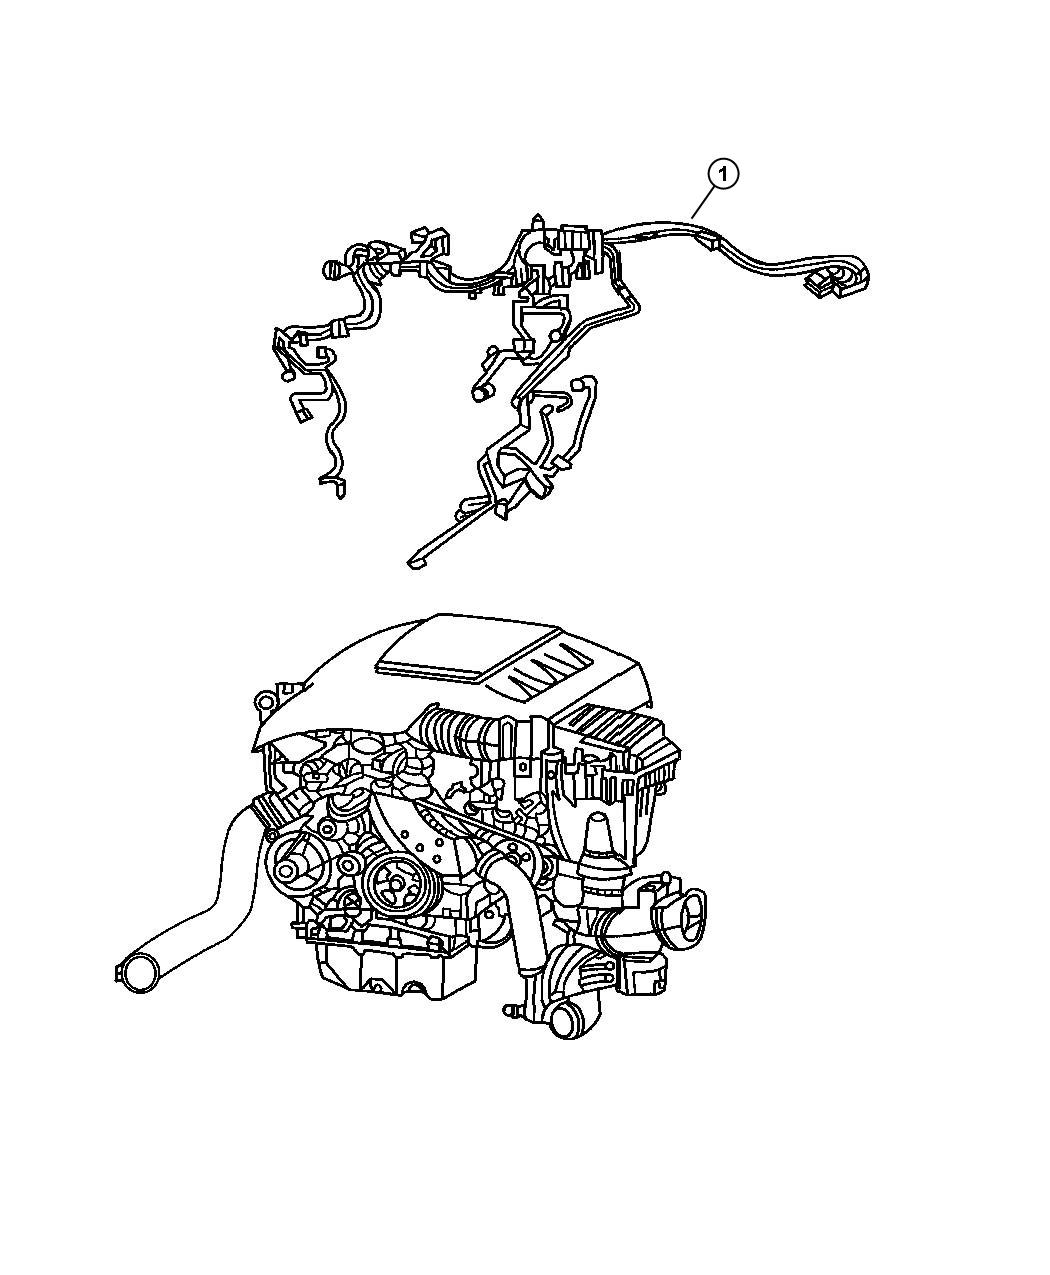 Jeep Grand Cherokee Wiring Engine Tag A 642 150 88